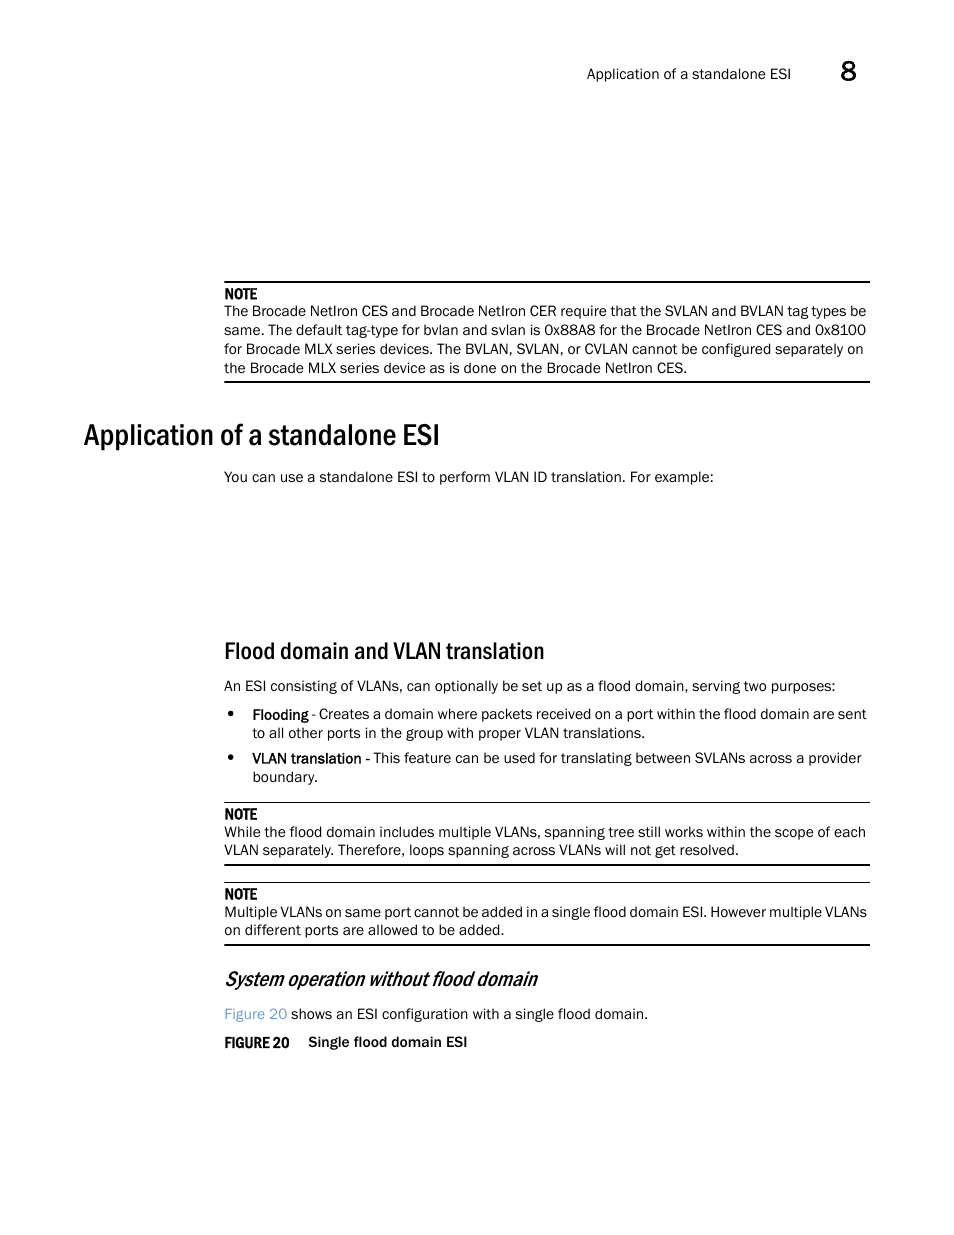 Application of a standalone esi, Flood domain and vlan